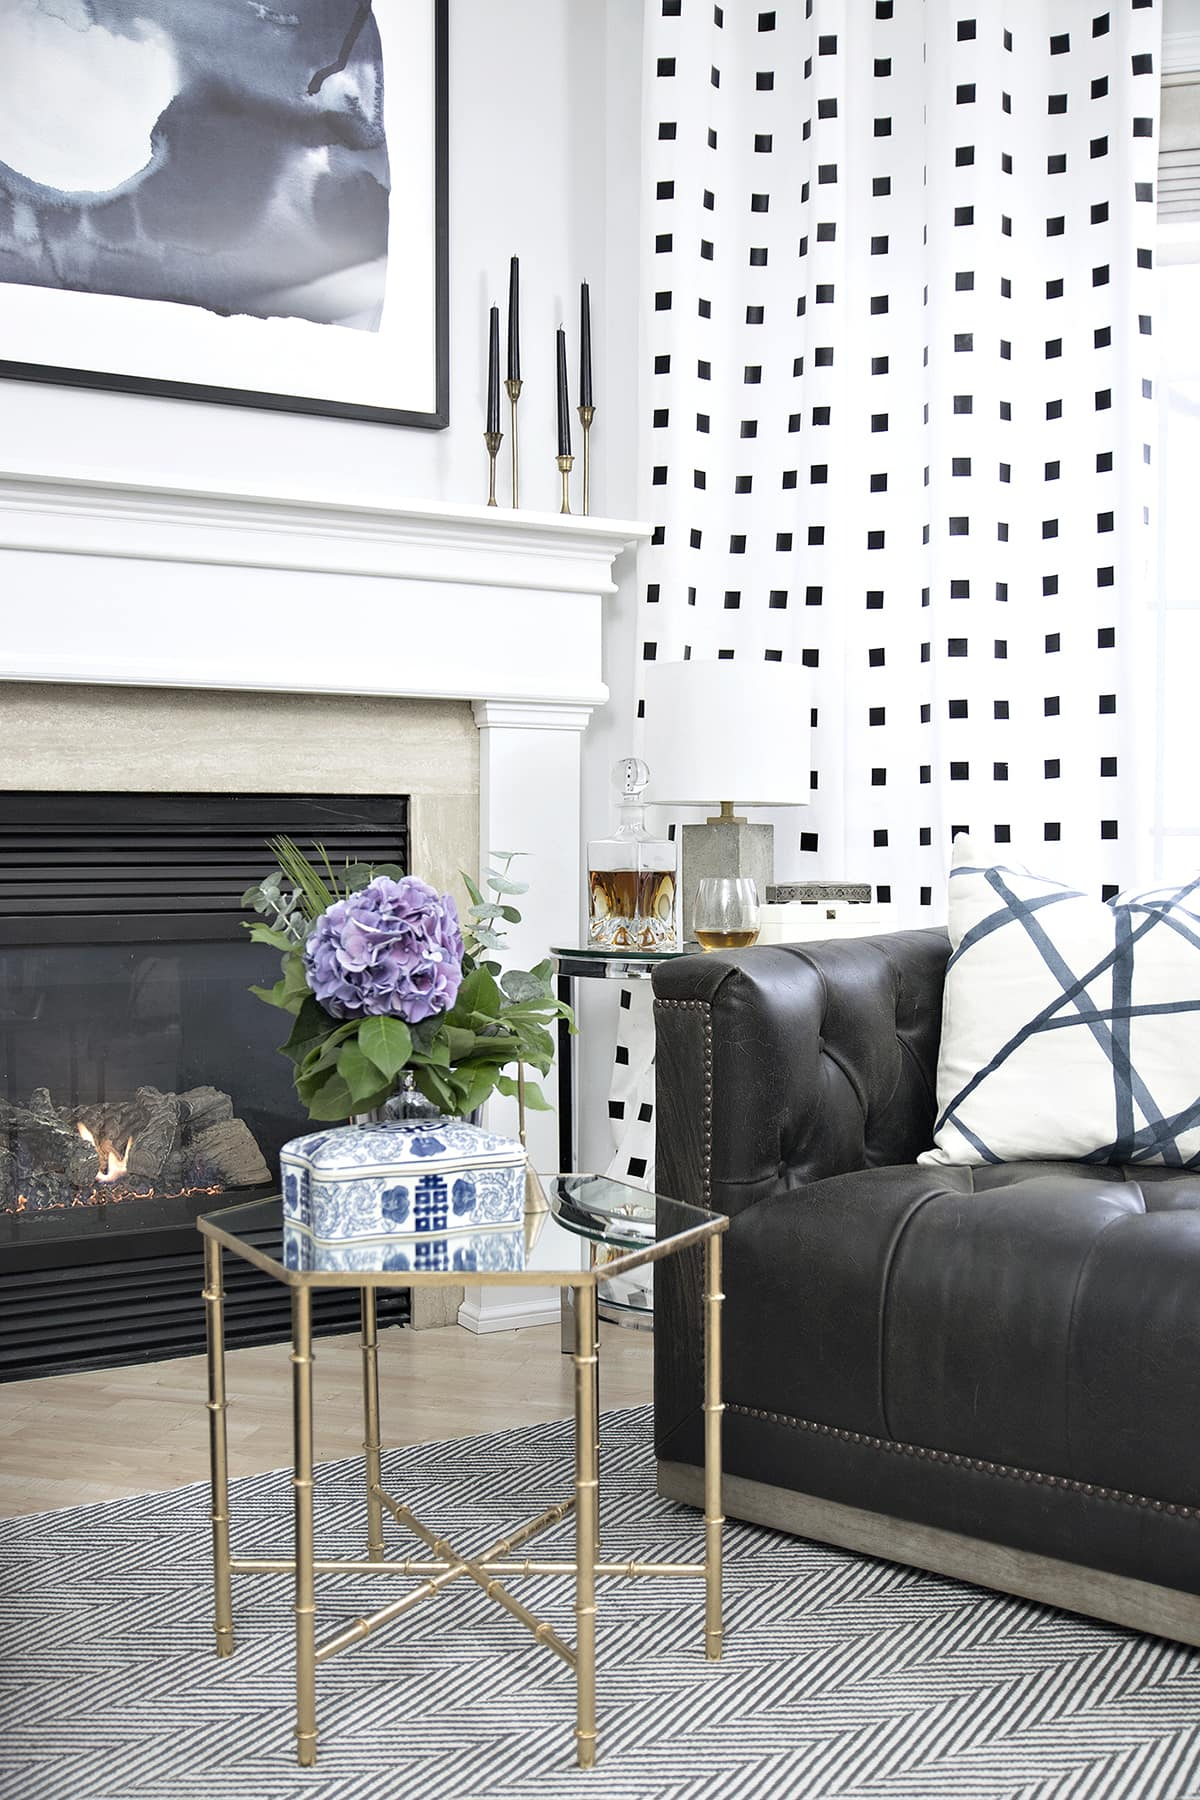 Classic eclectic living room fireplace area makeover with @raymourflanigan including leather swivel chairs, mixed metal accent furniture, concrete lamps and hints of blue.